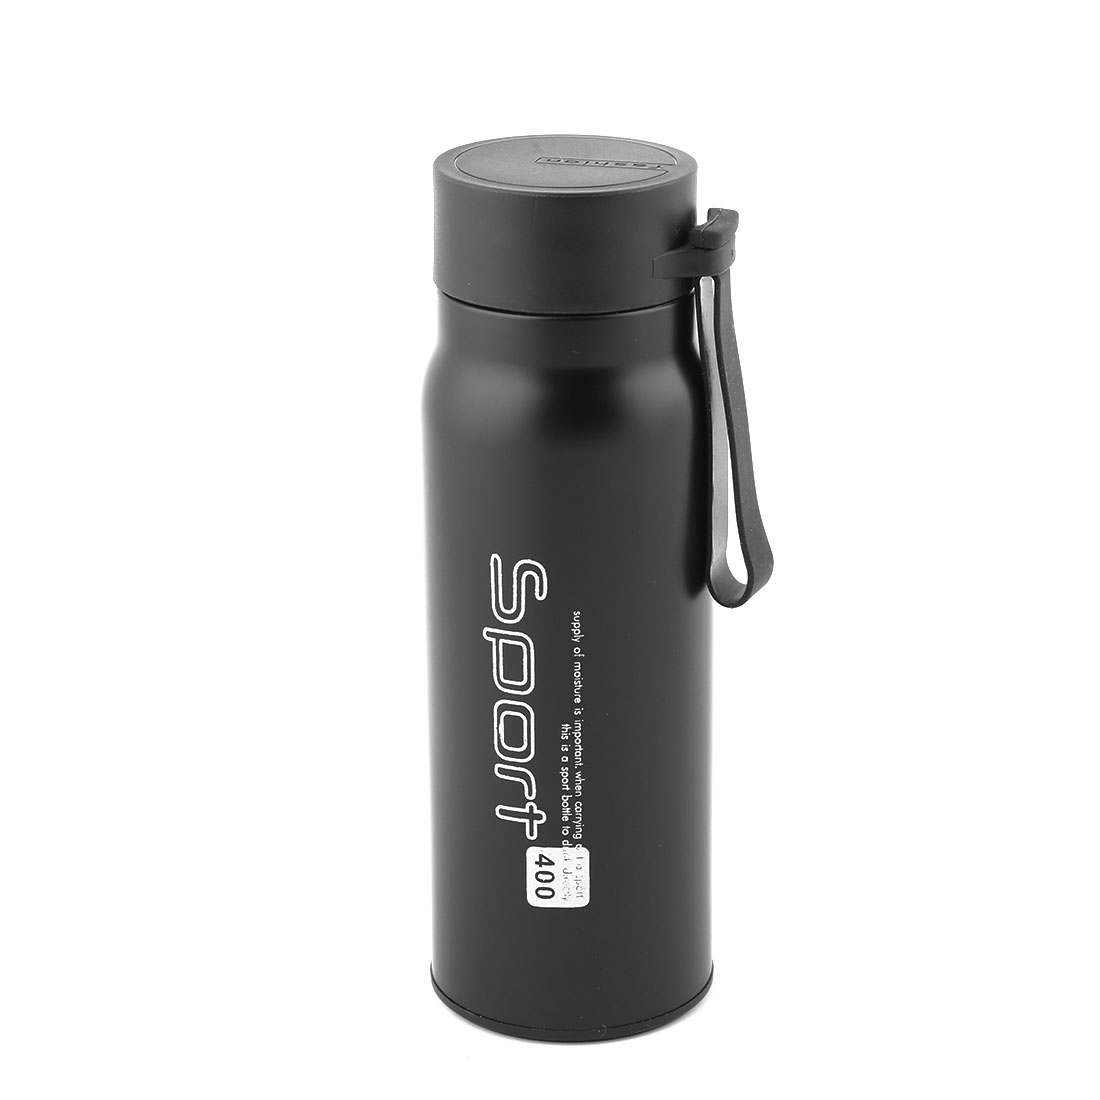 Home Travel Stainless Steel Tea Water Insulated Vacuum Thermo Cup Bottle Mug Black 400ml